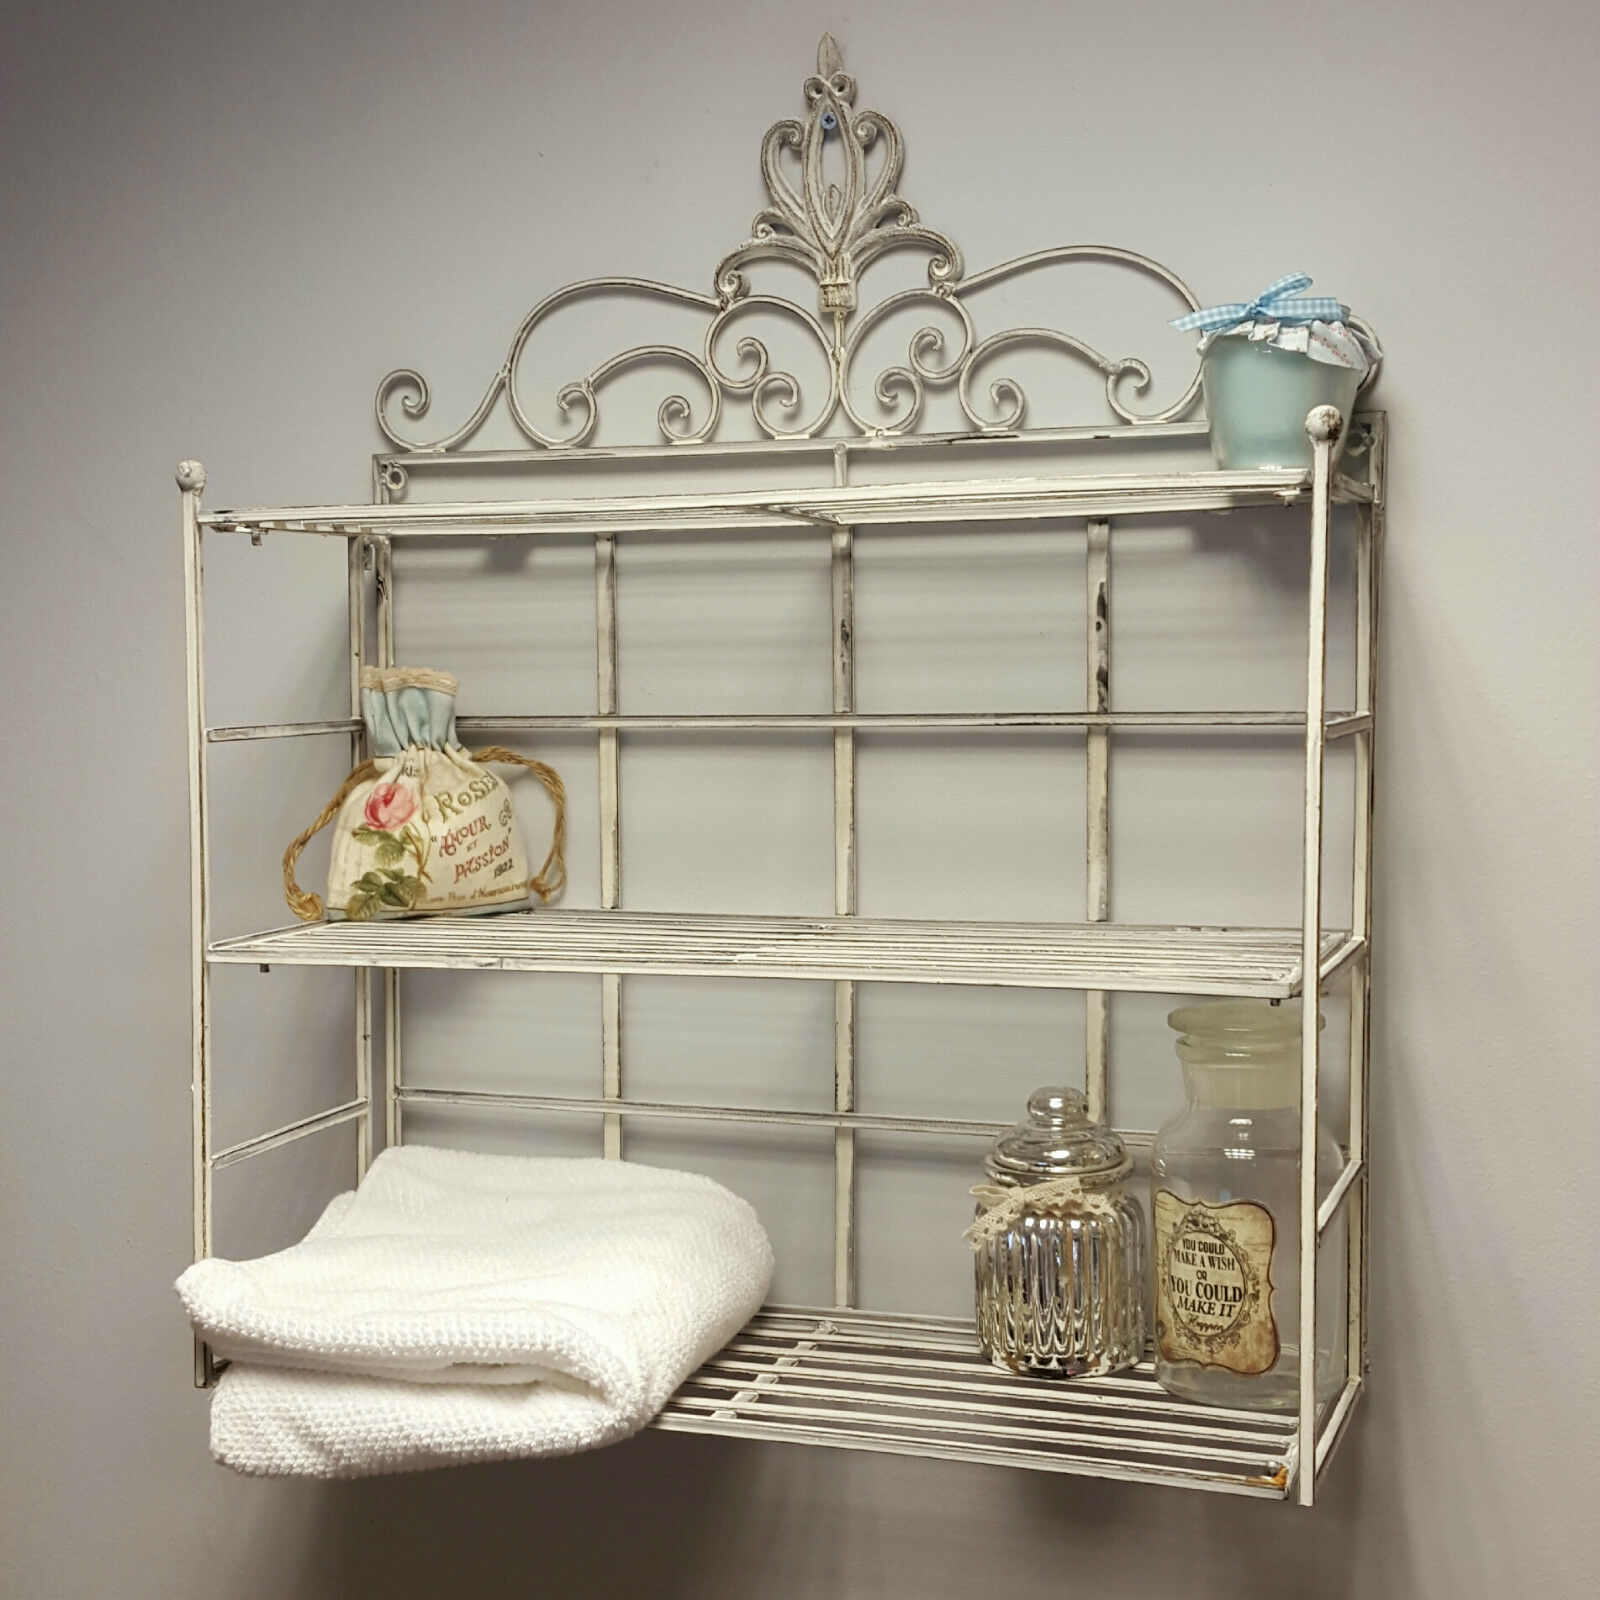 Shabby Chic Vintage Wall Shelf Storage Unit Display Metal